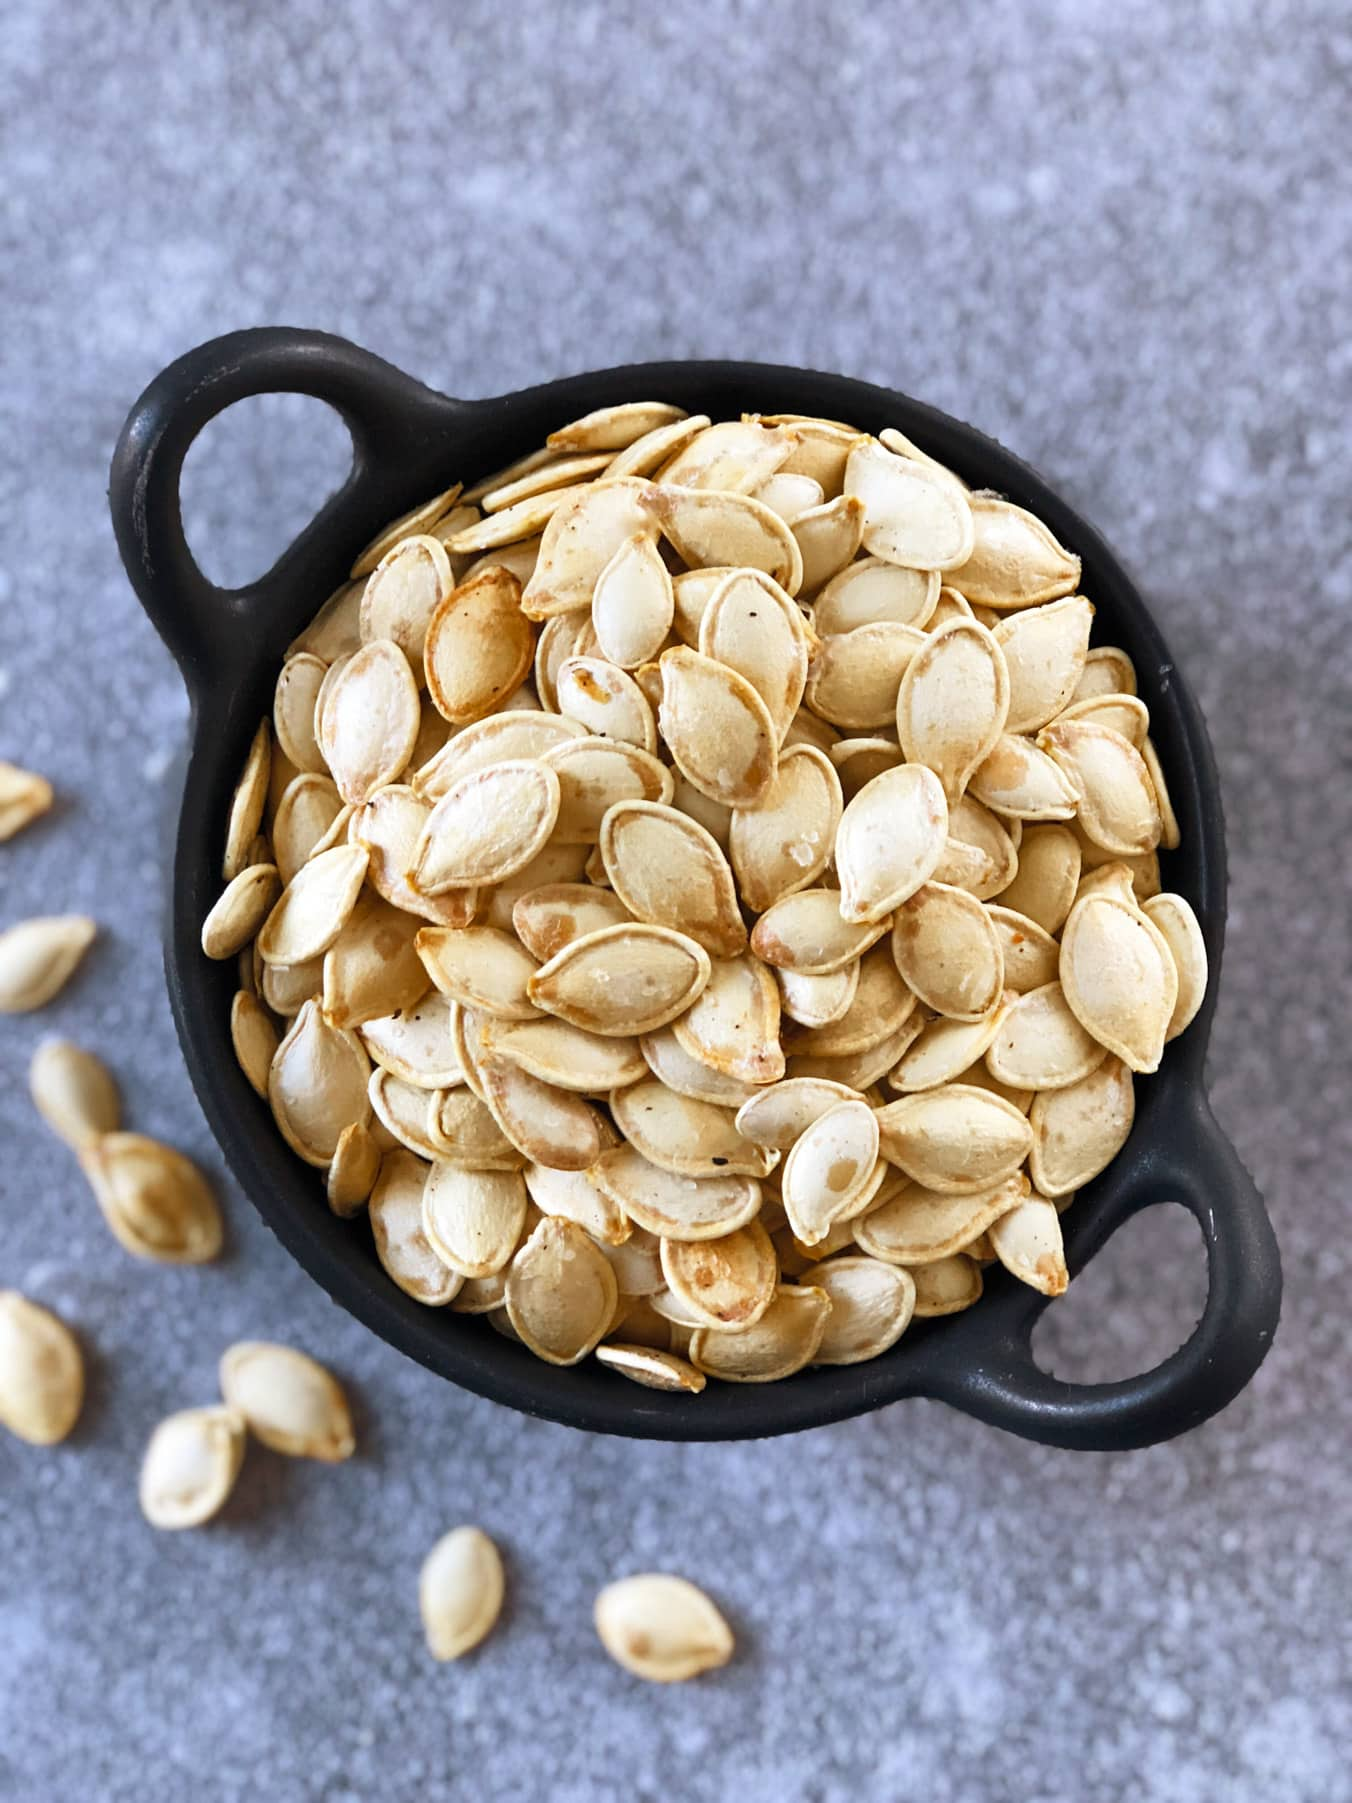 Airfryer Roasted Pumpkin Seeds